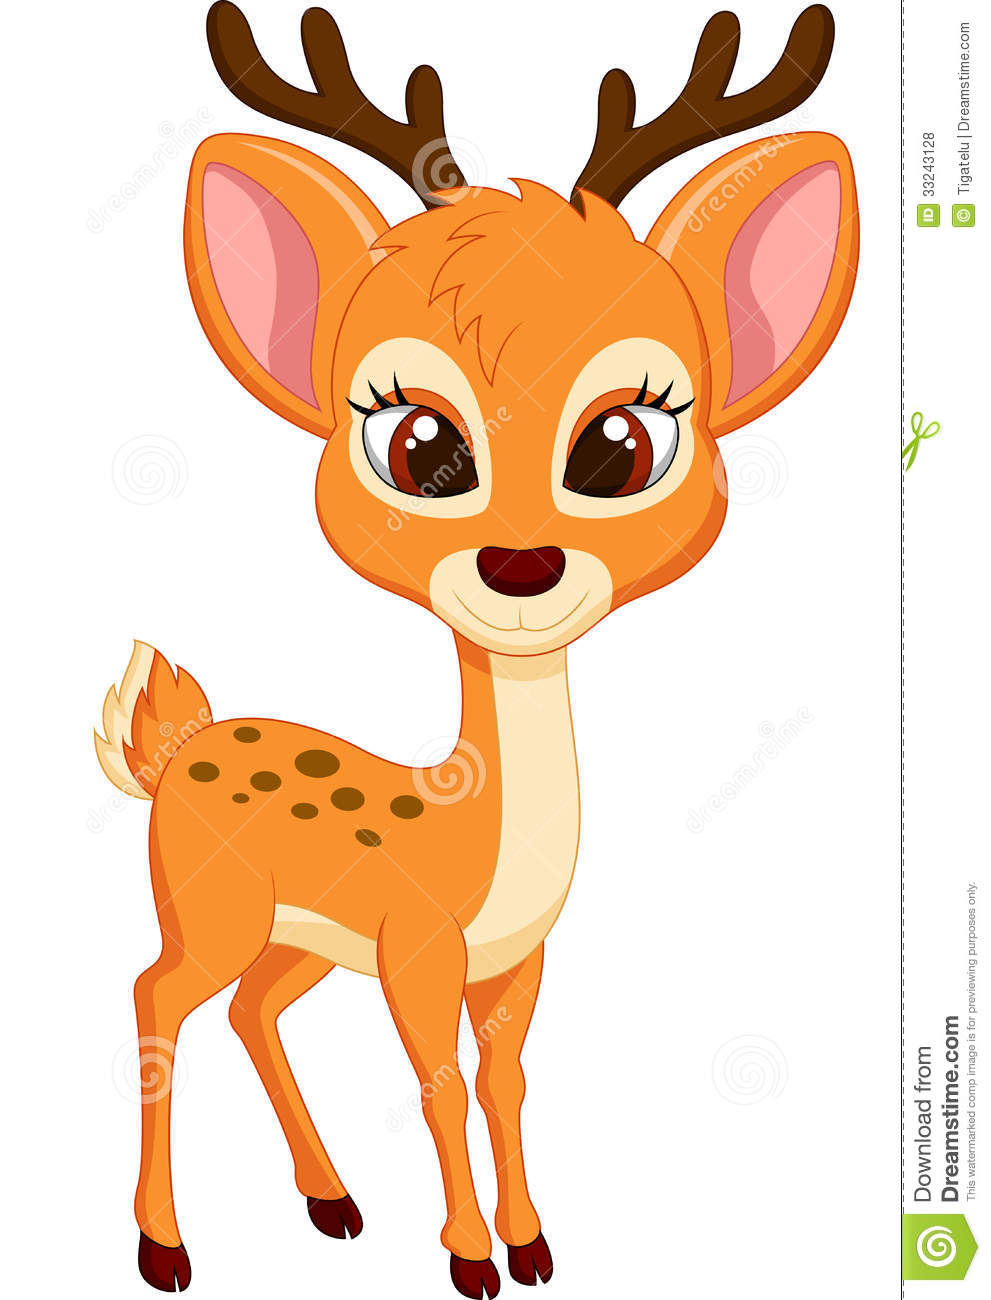 Cute deer cartoon stock vector. Illustration of icon ...